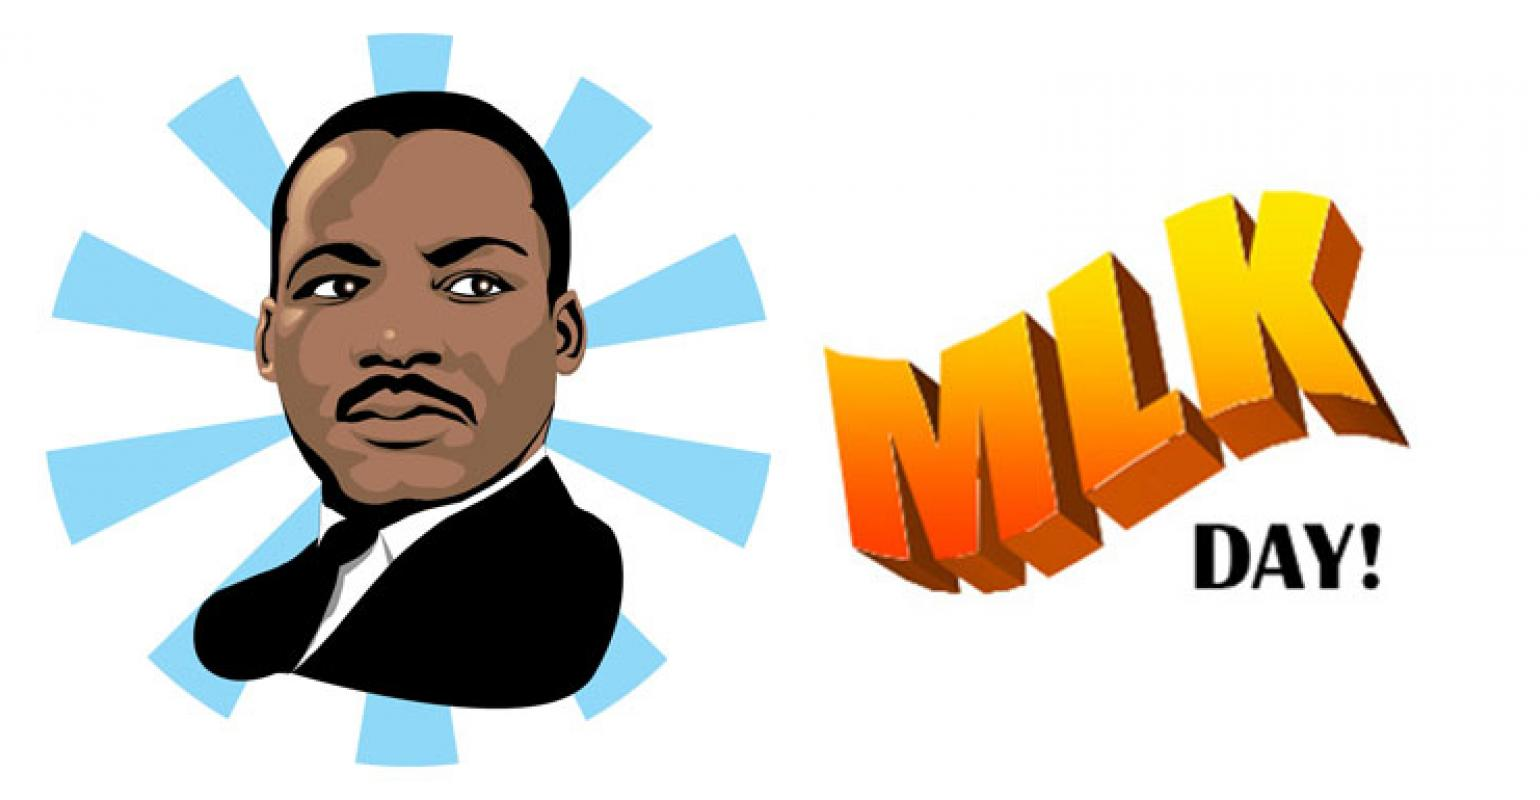 Mlk clipart middle school. Dr martin luther king